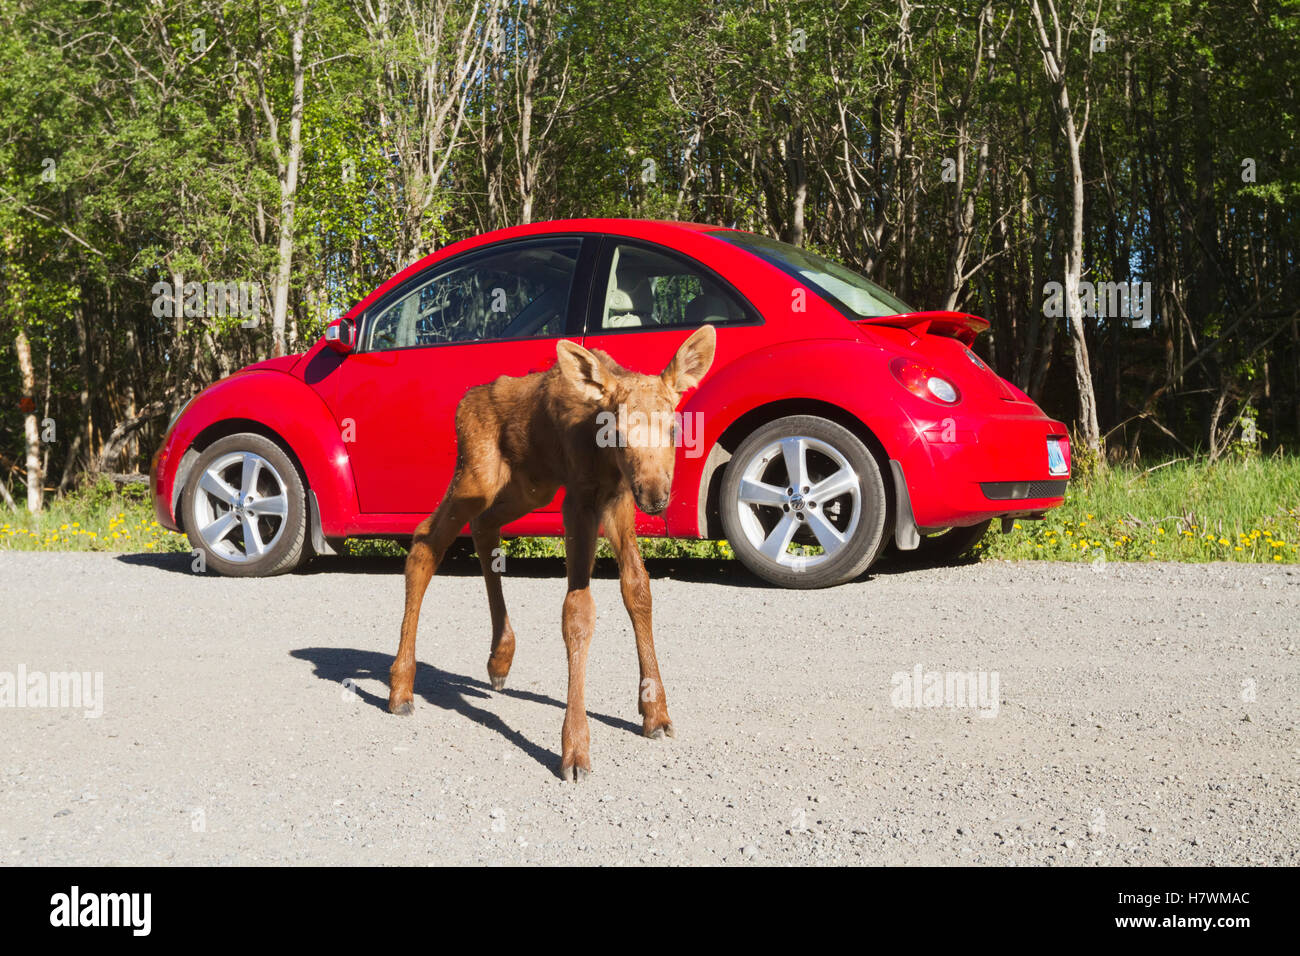 Moose And Car Stock Photos Amp Moose And Car Stock Images